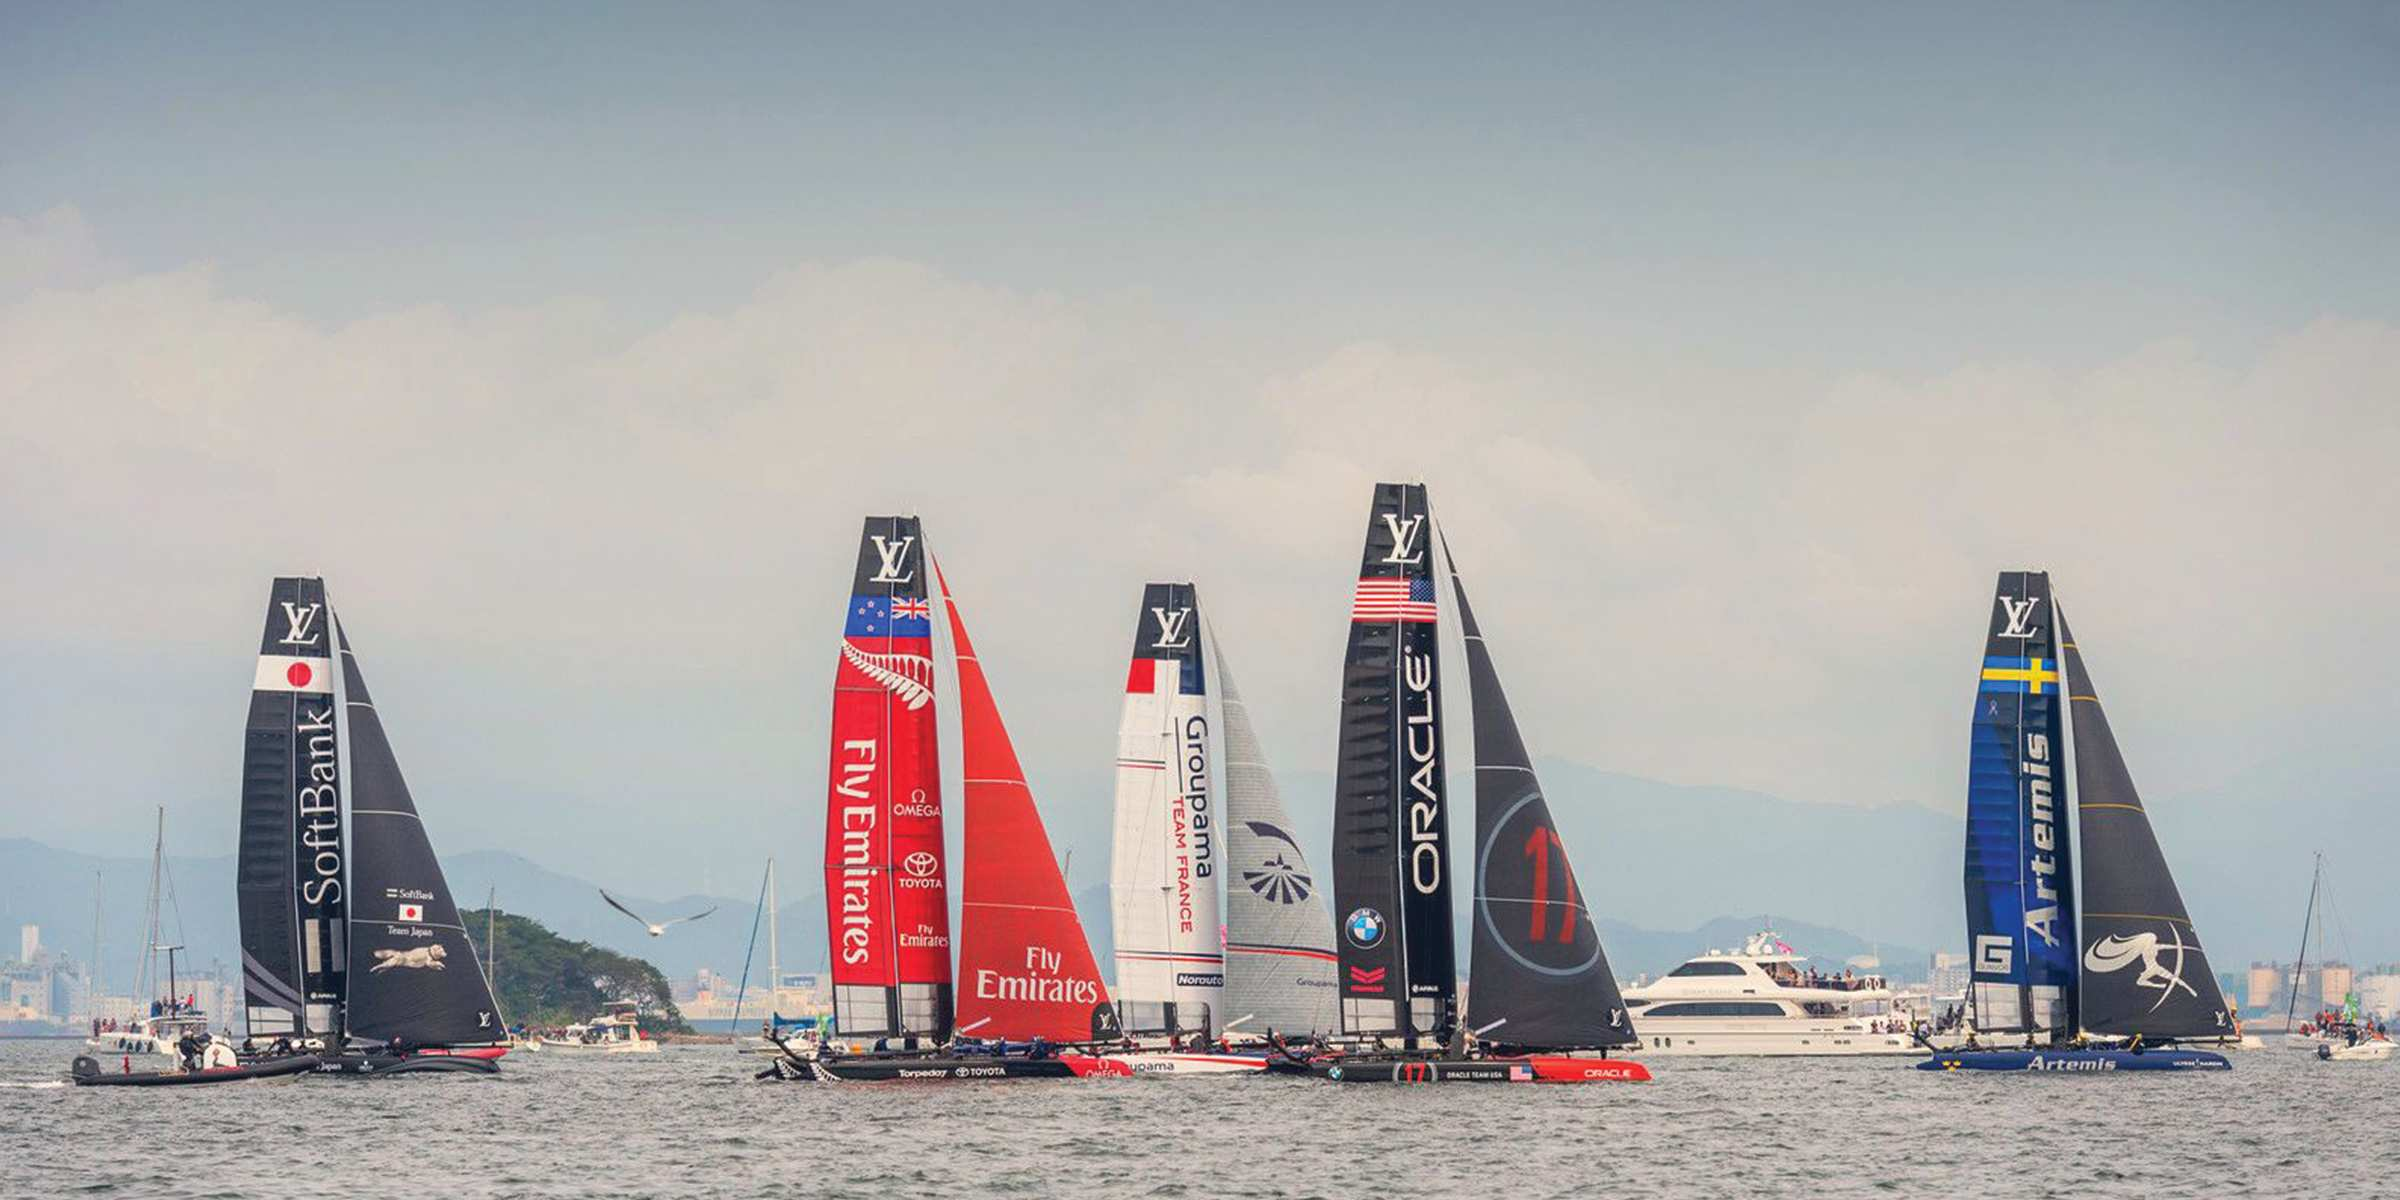 us_tm_3446_1018_blog-update-to-timeline-page-to-match-blog-format-americascup.jpg